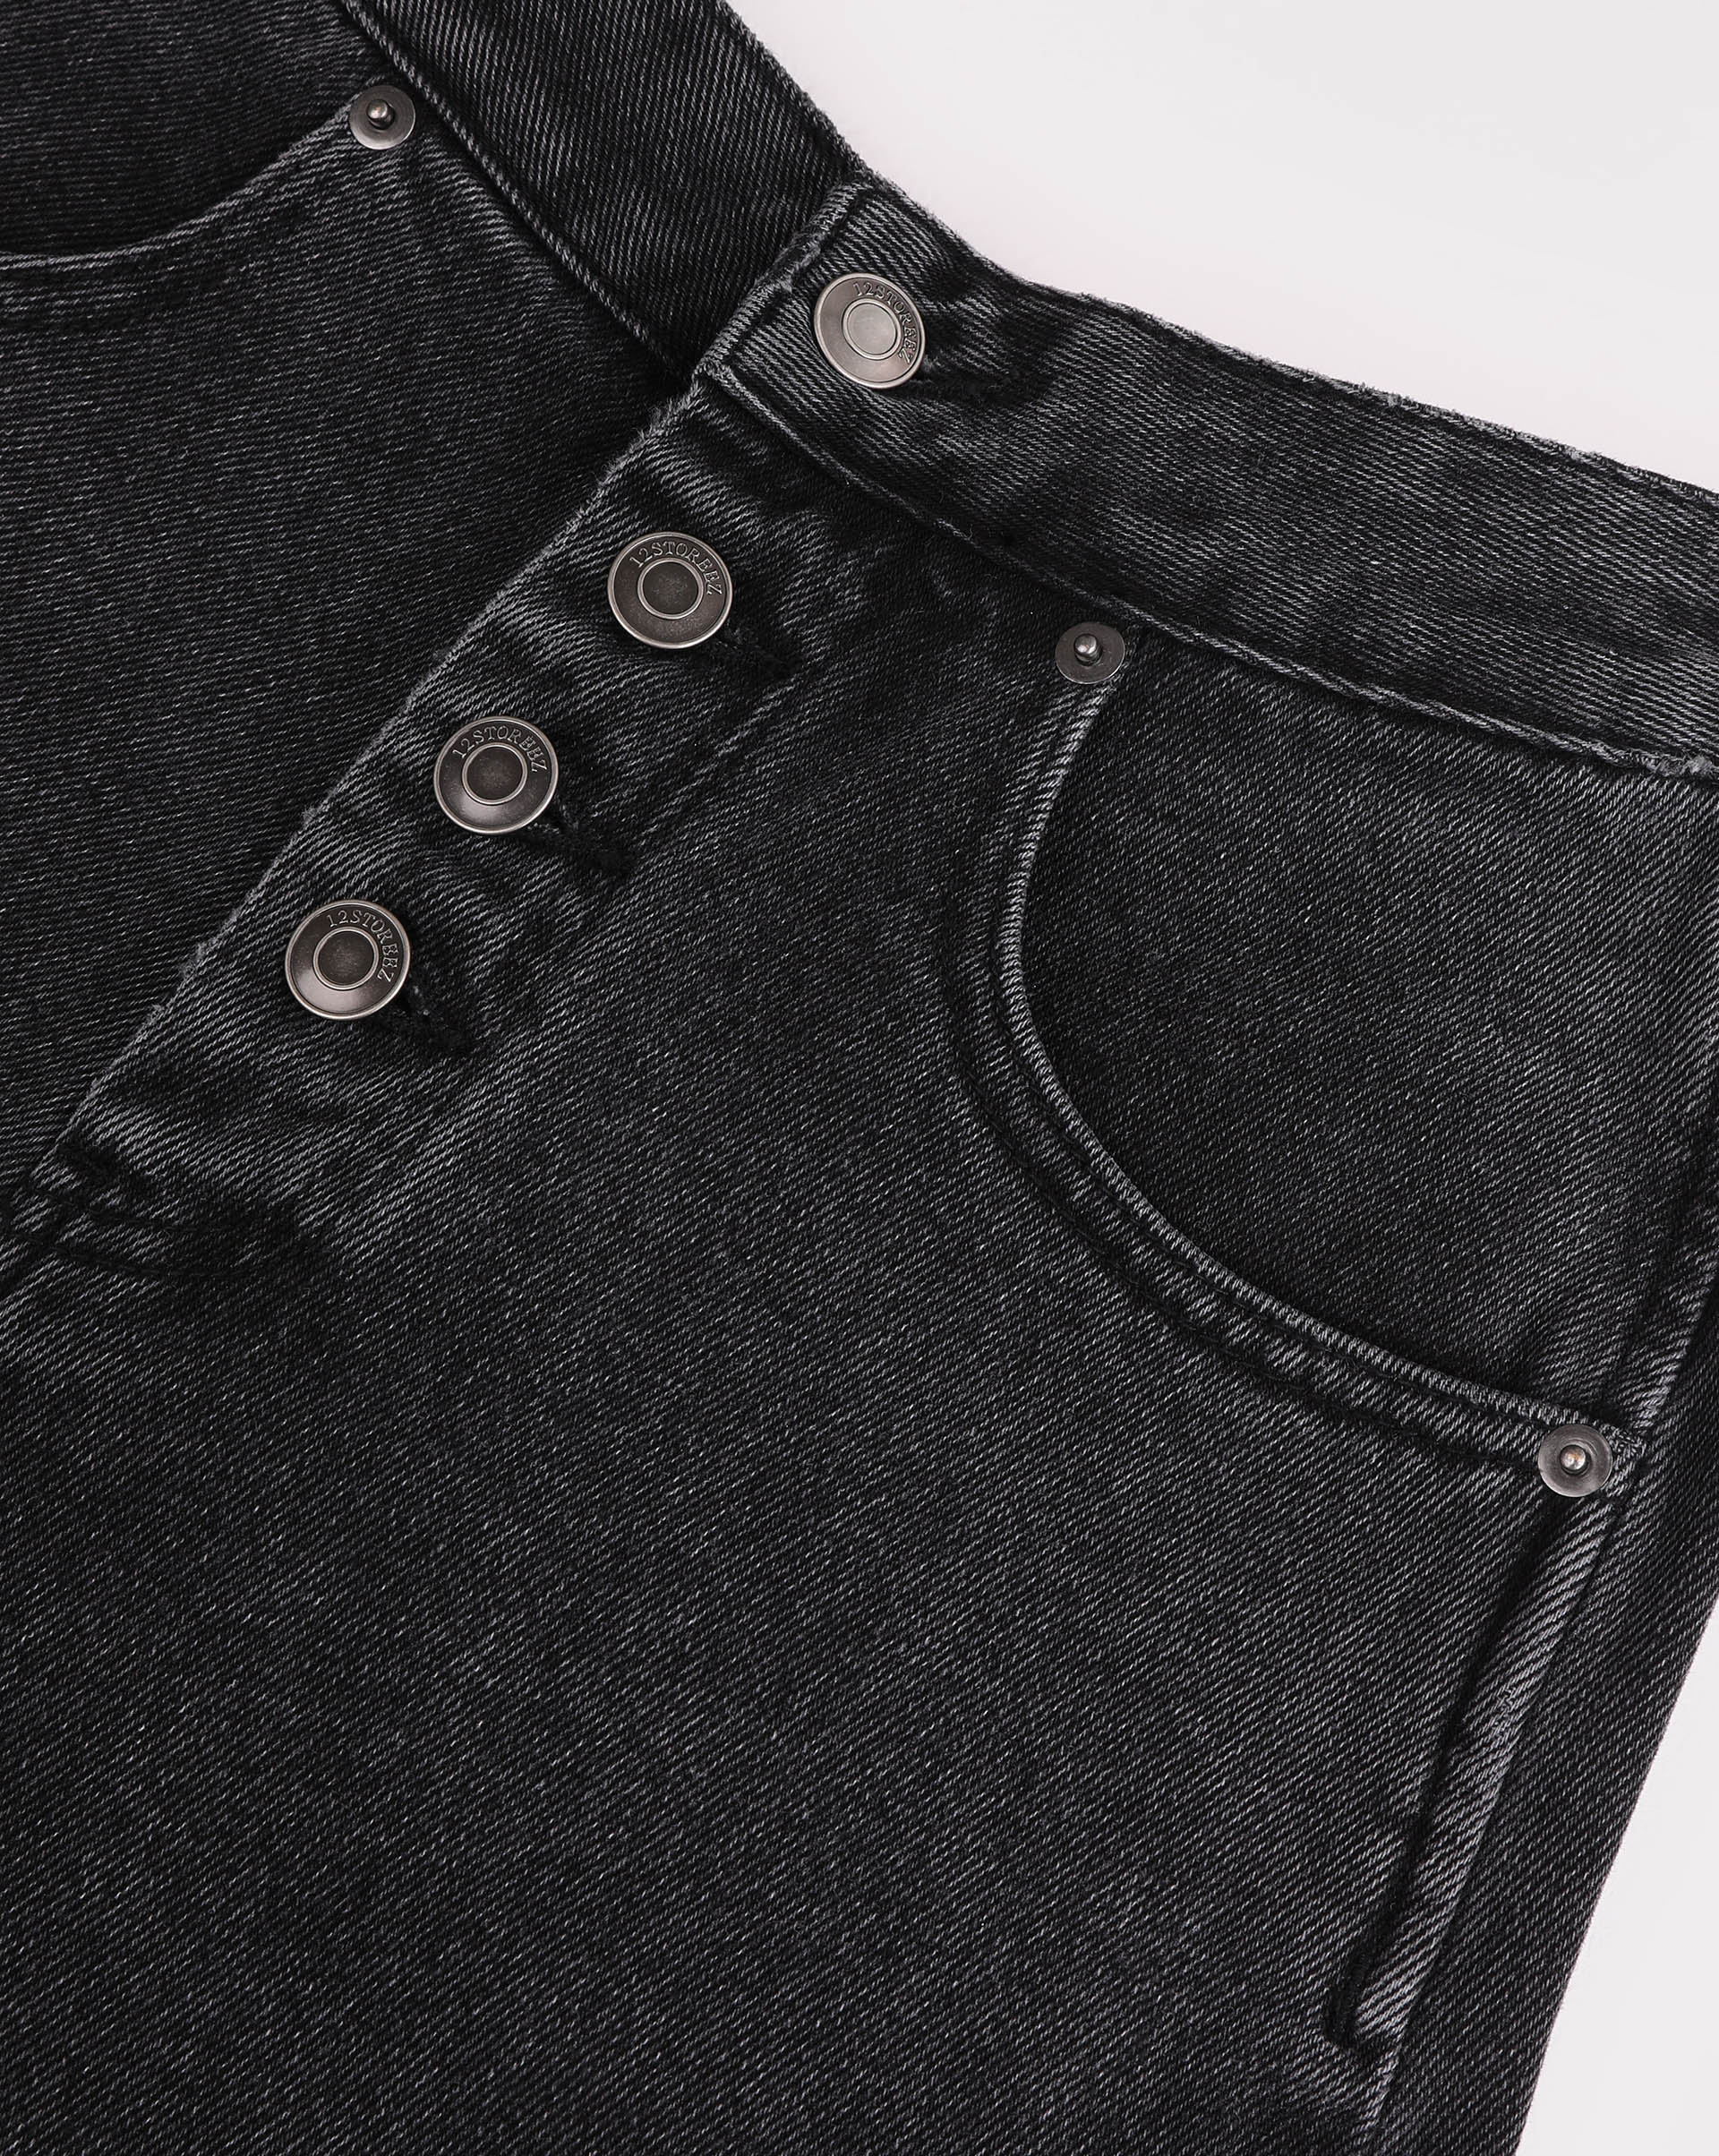 Wide leg button fly jeans - 12 STOREEZ